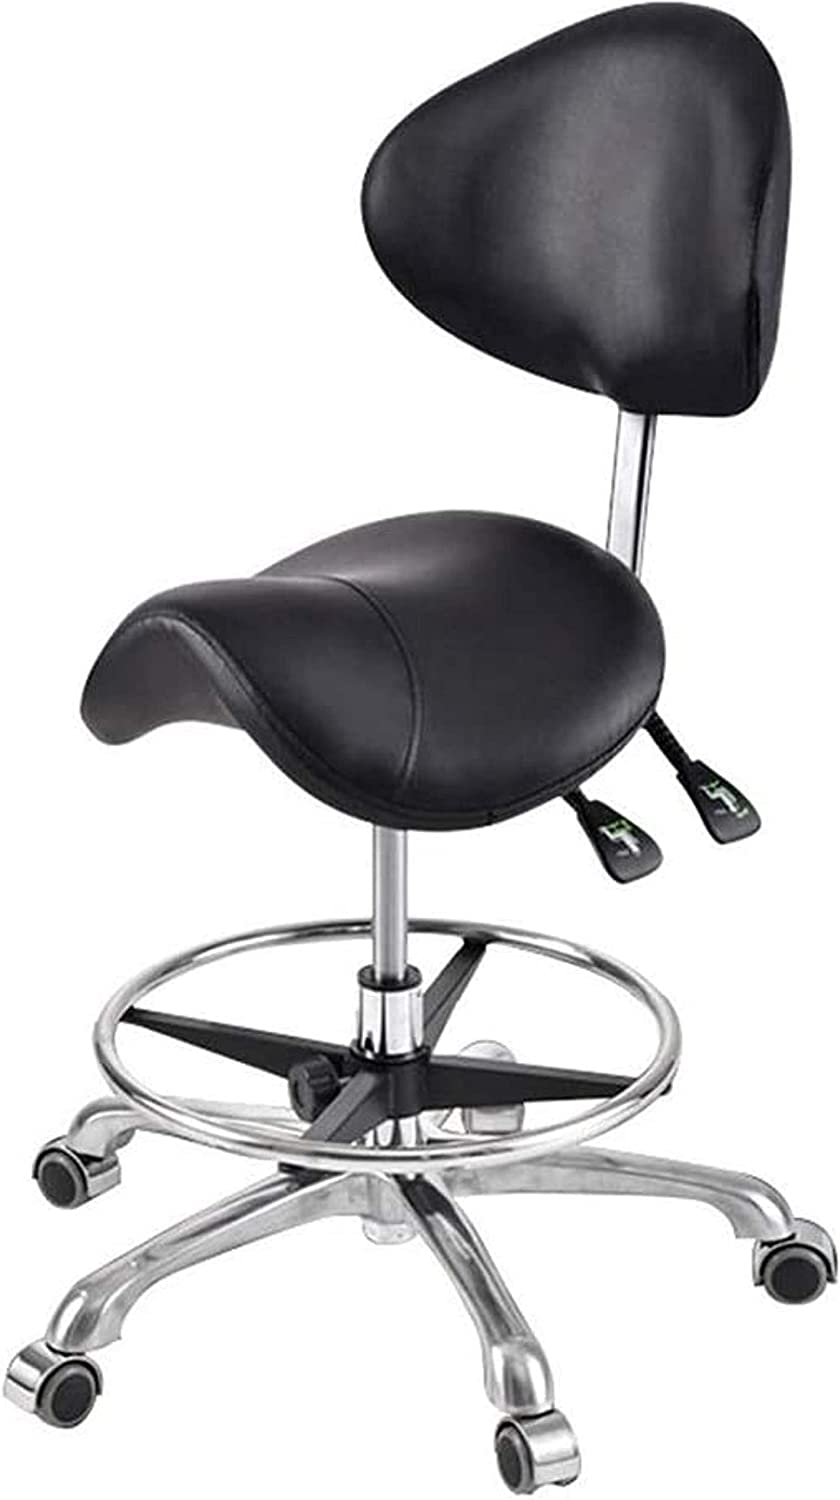 HZYDD Max 63% OFF Comfortable Bar Stool Swivel ! Super beauty product restock quality top! Chair Saddle Back with